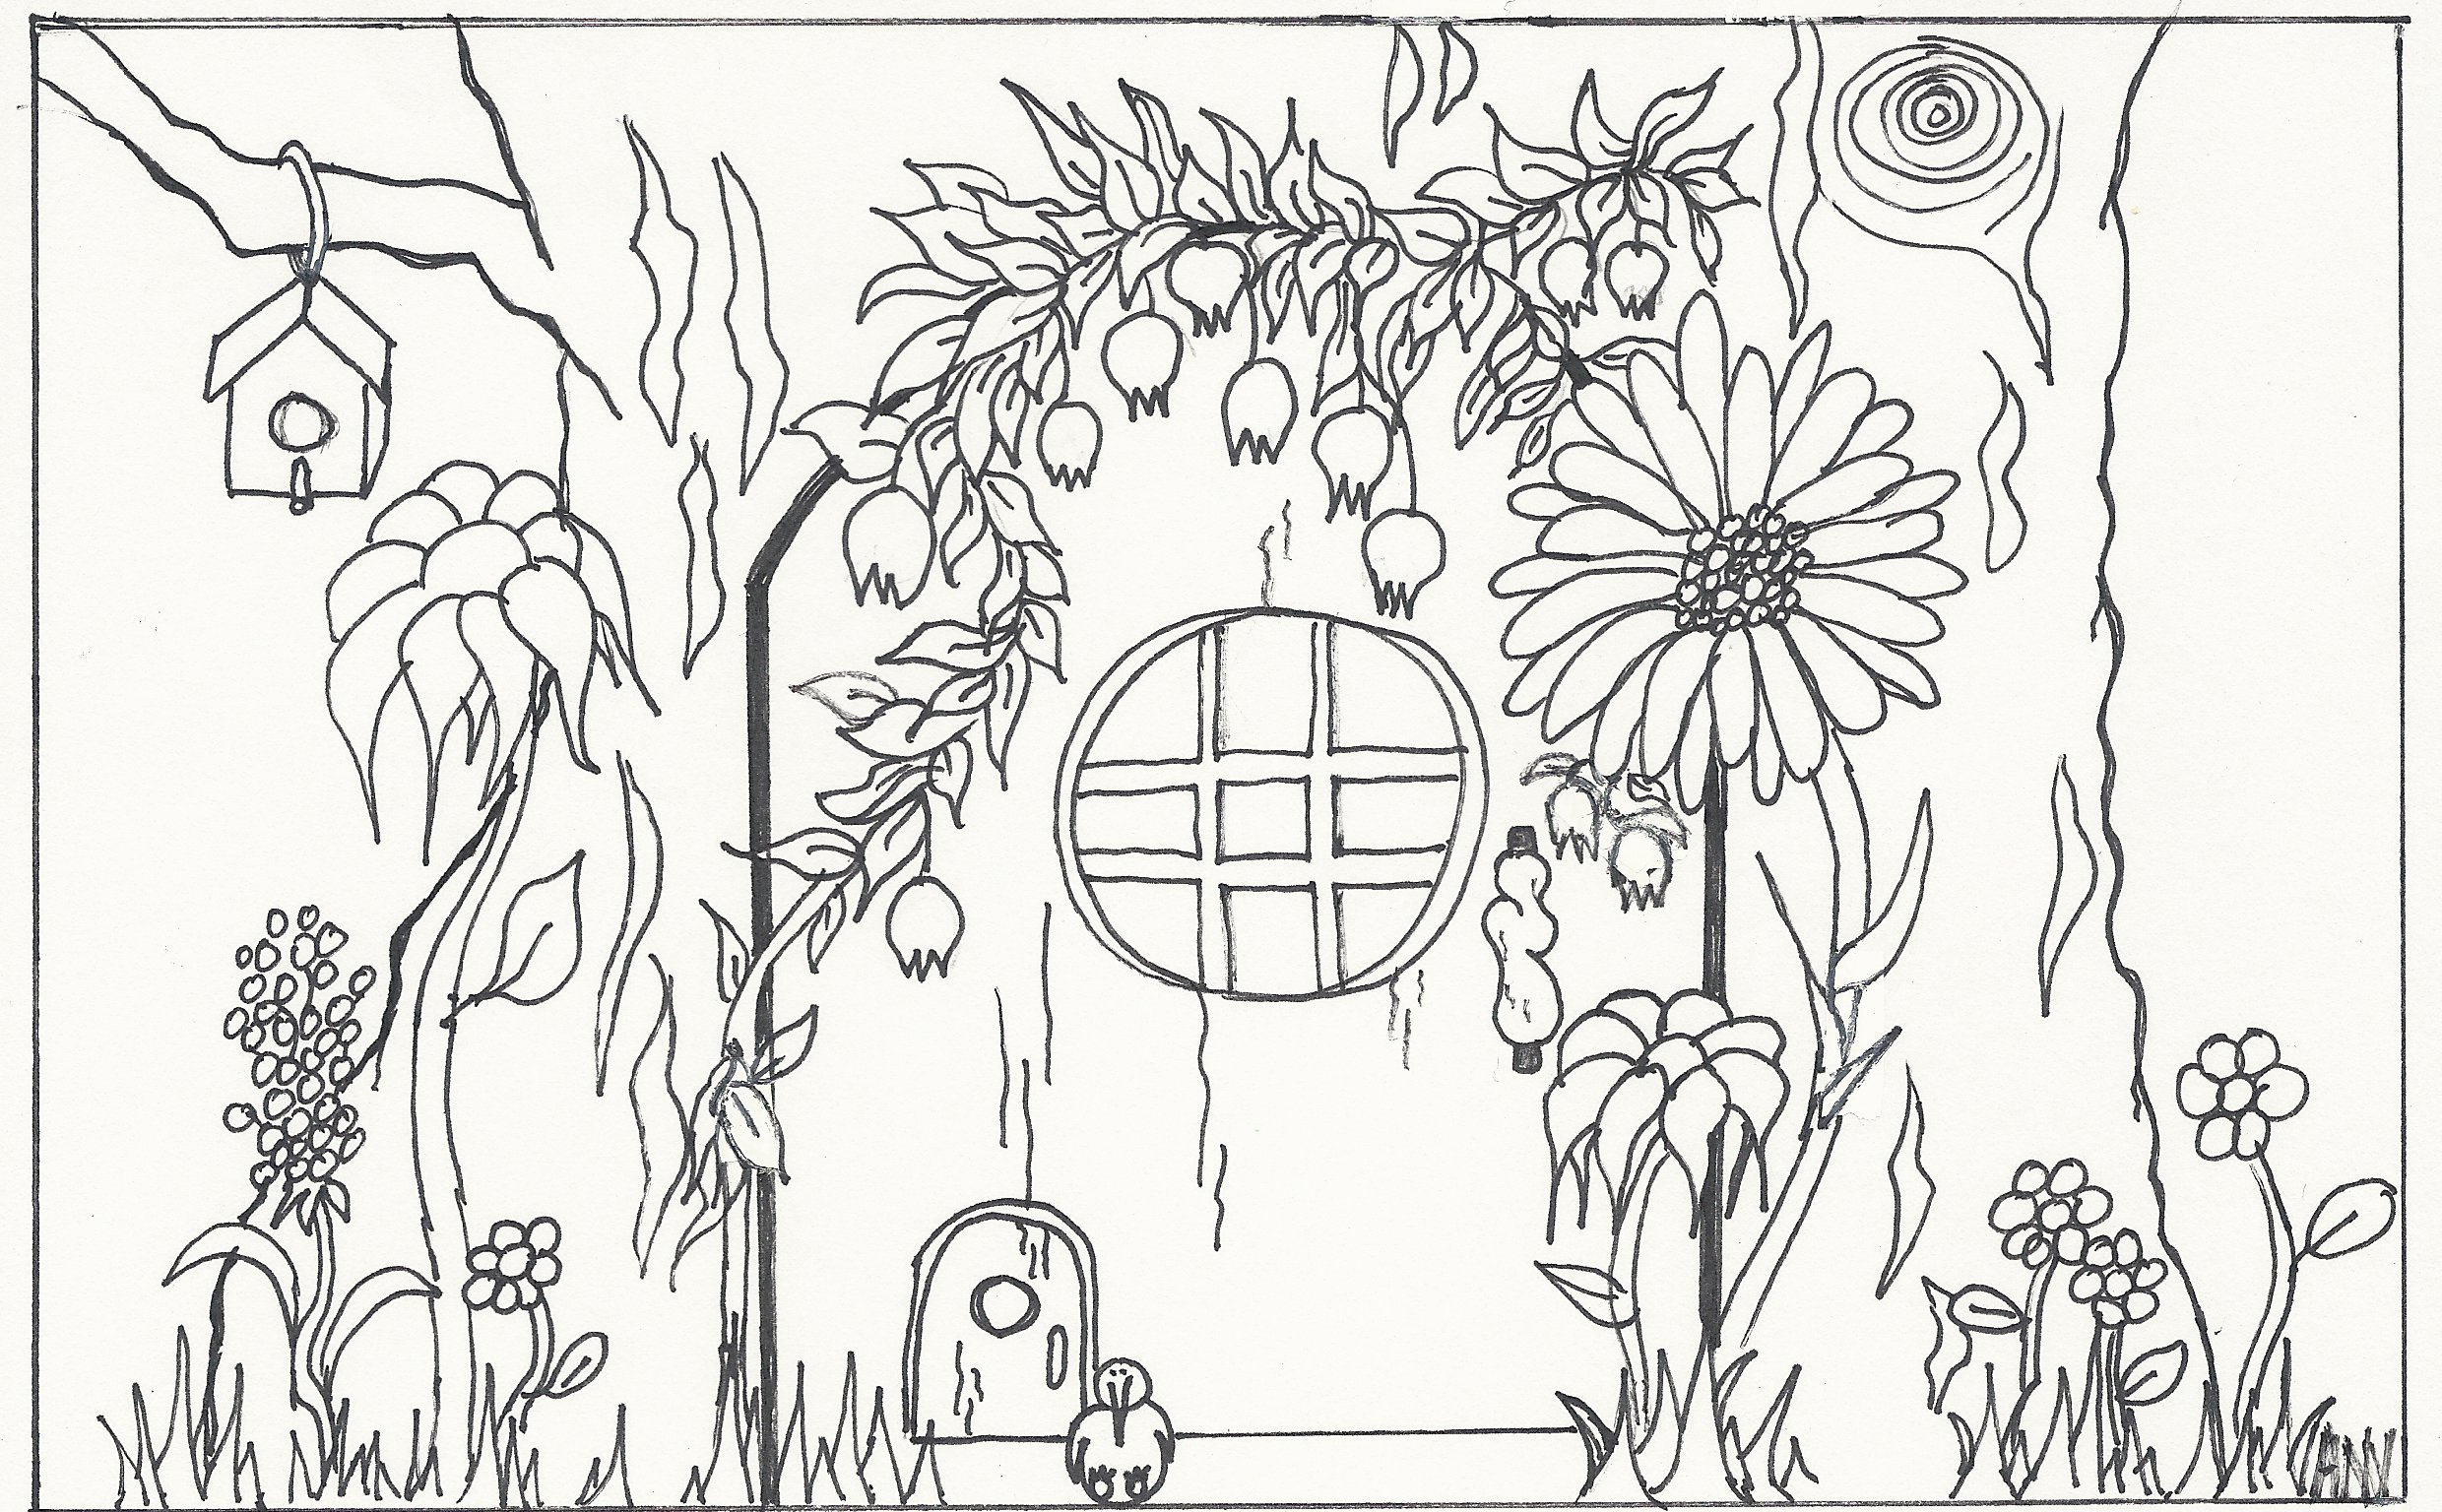 One of my drawings for the Absolutely Wild! faerie door coloring book.  sc 1 st  Ann Narcisian Videan & Beyond whimsy: Experience the impact of faerie doors | Ann Narcisian ...